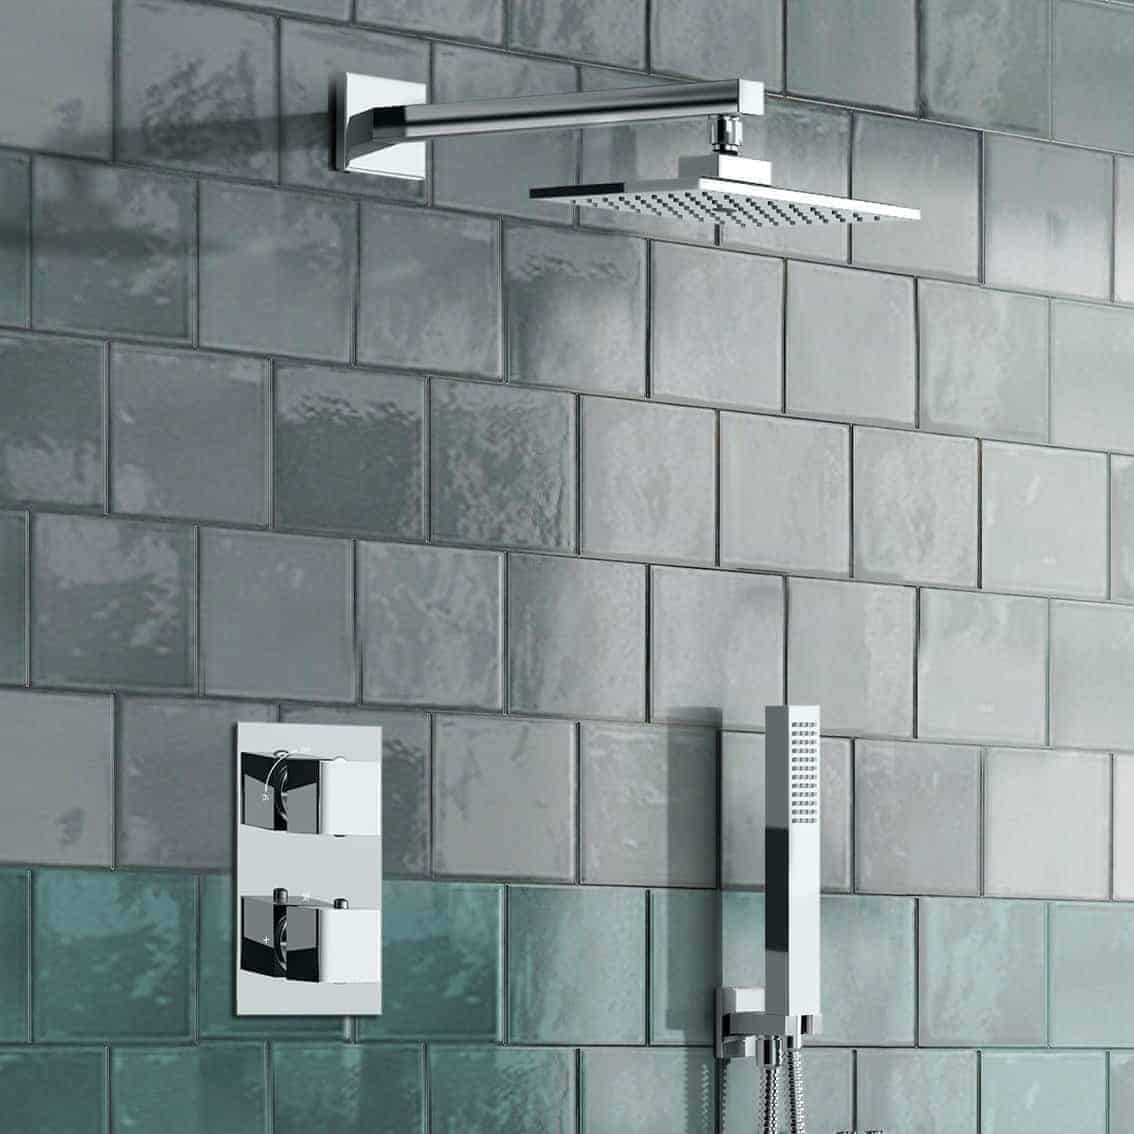 Discover The Best Mixer Shower: Top 10 Mixer Valves Reviewed – UK ...